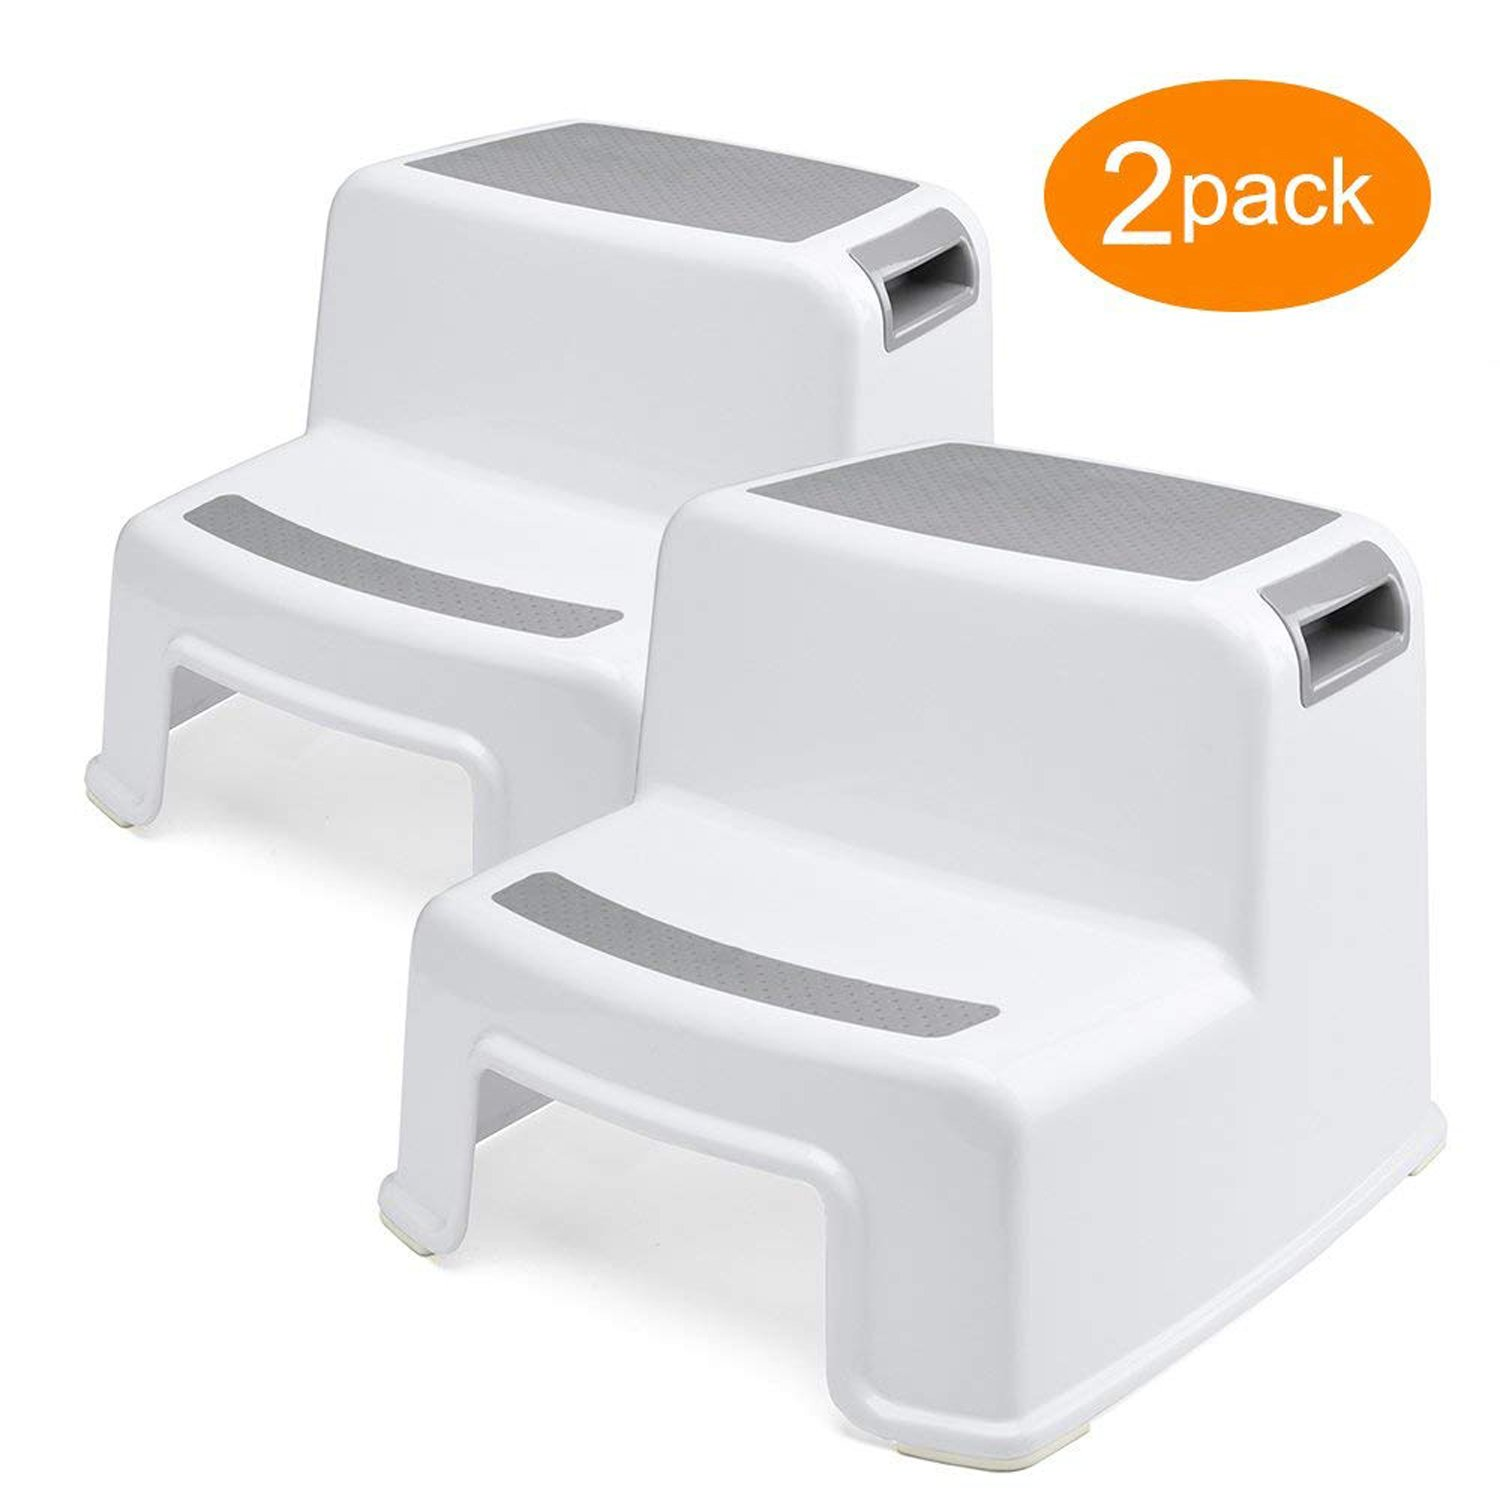 ACKO 2 Pack Dual Step Stool for Kids, Toddler Step Stool in Bathroom, Kitchen,Bathroom Stool for Potty Training, Soft Grip Double Step Stool, Kids Sink Step Stool